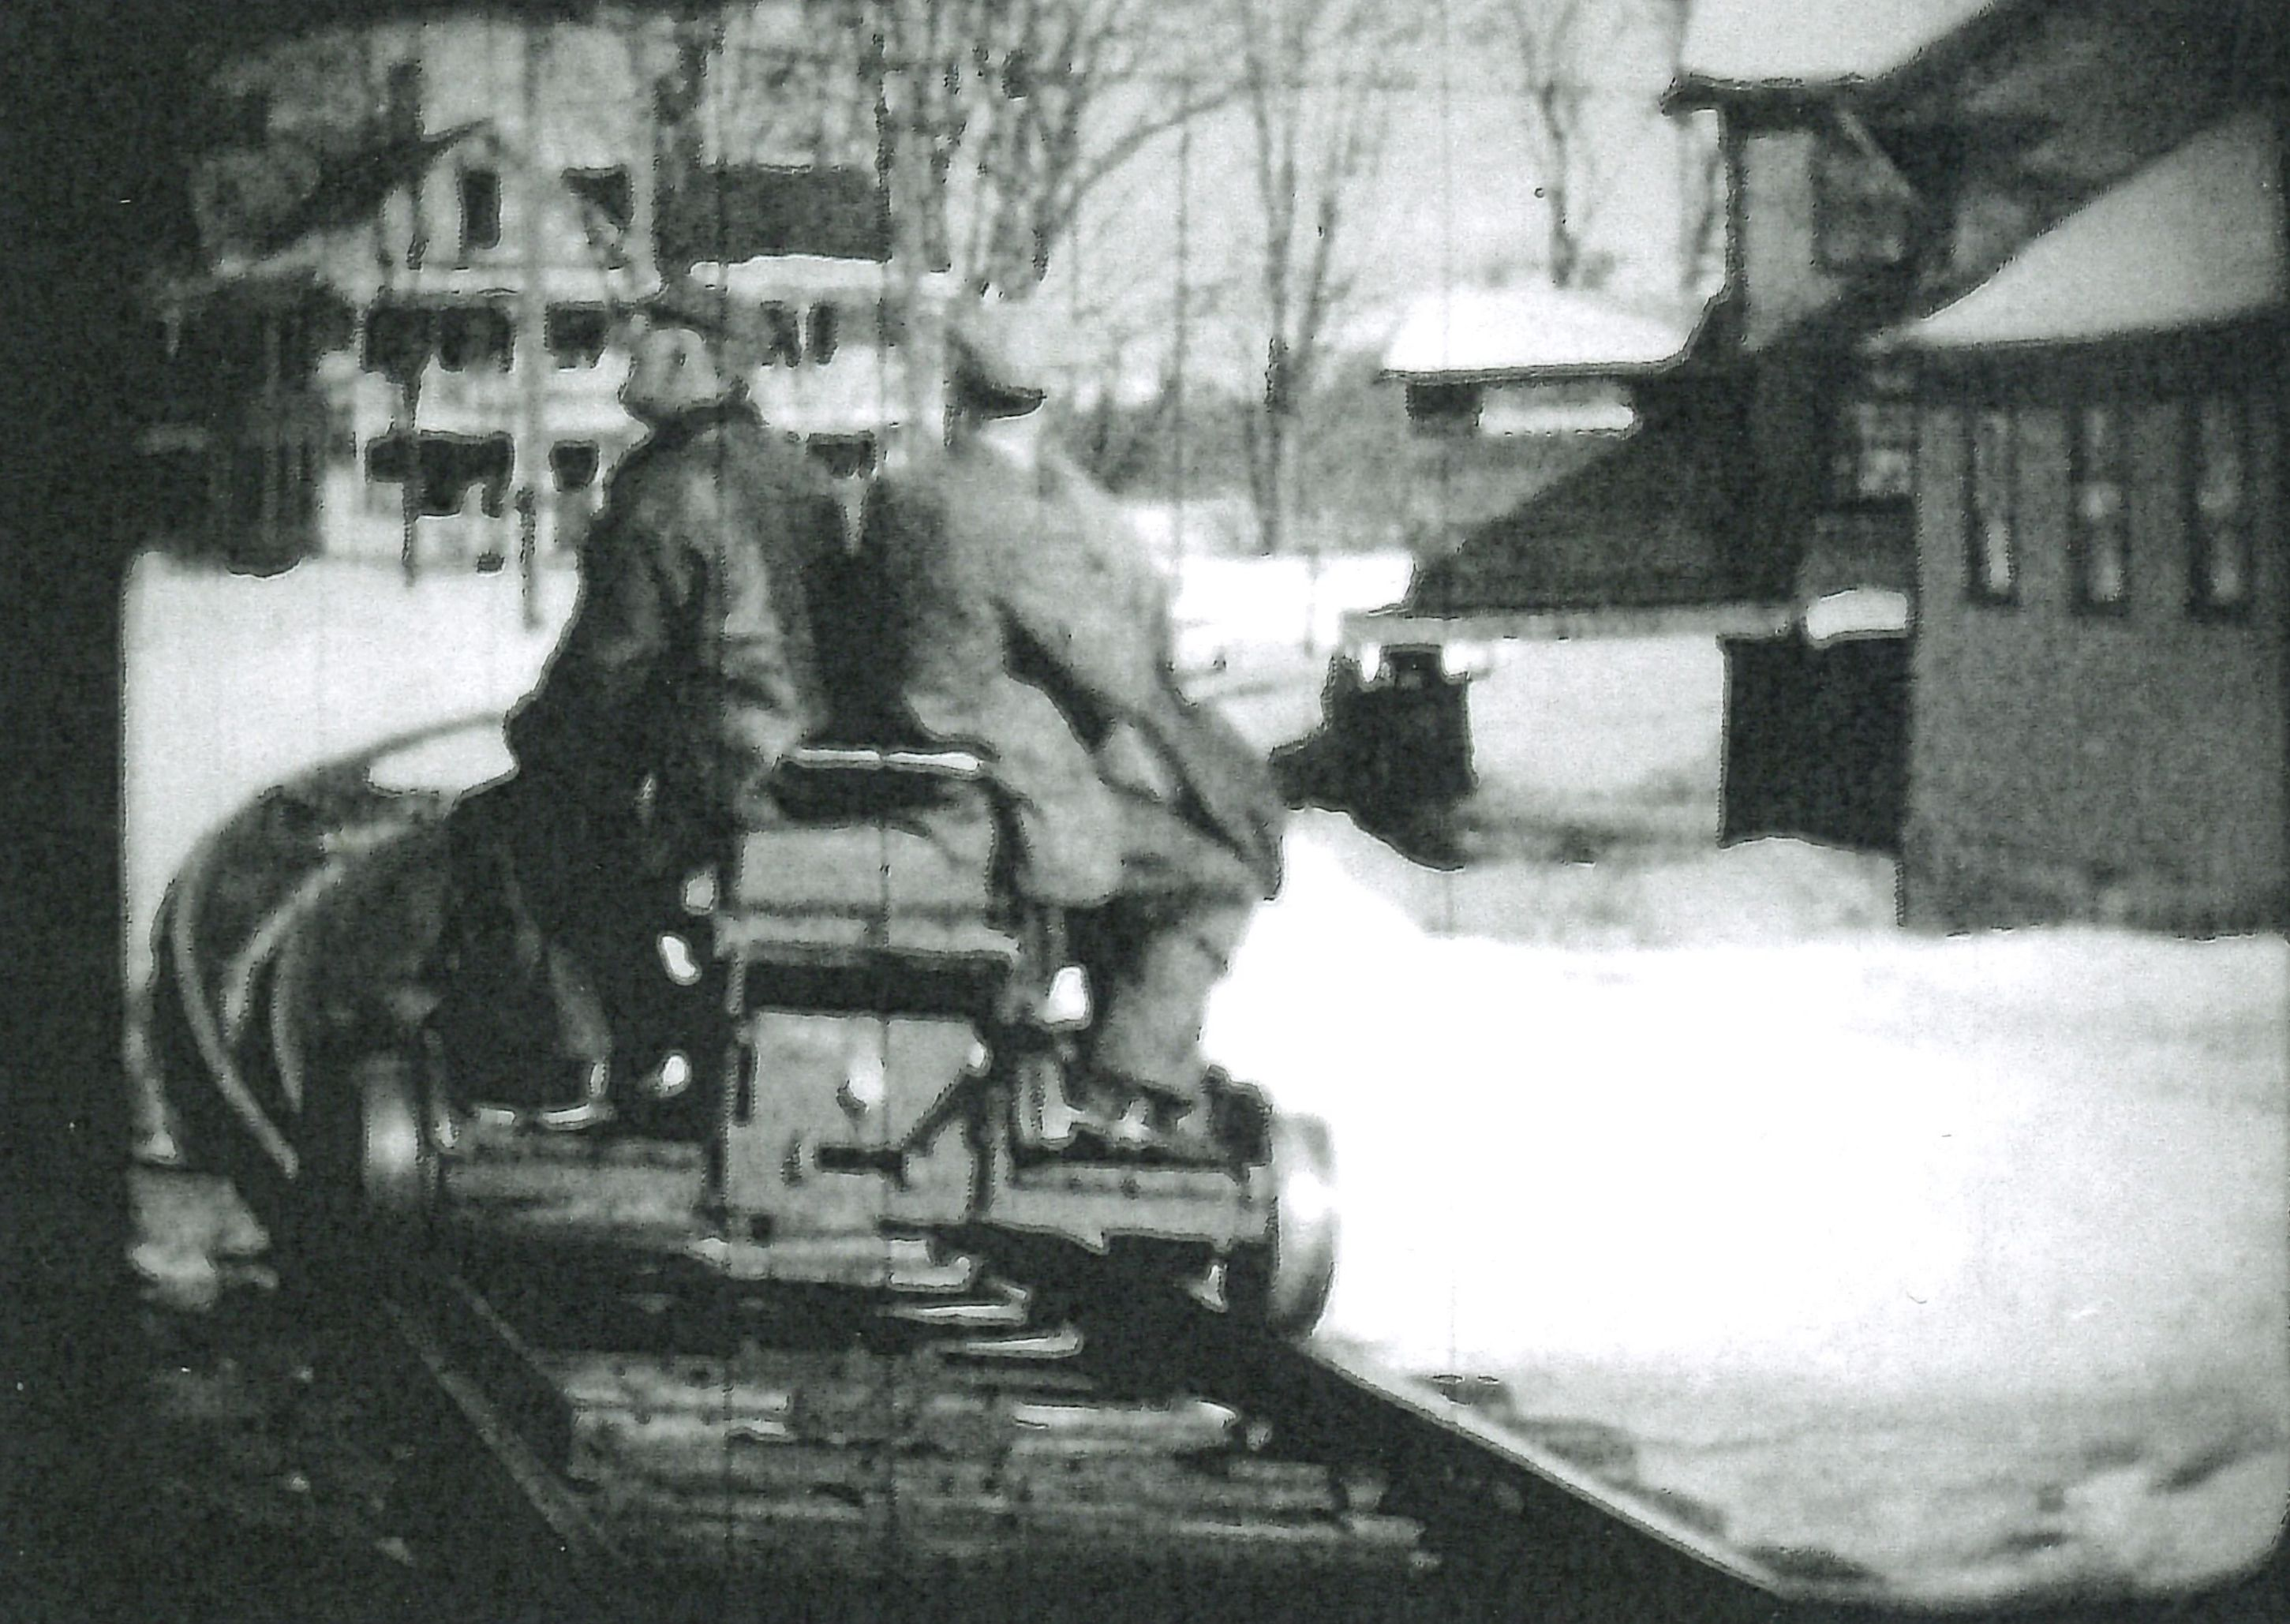 Phil Ball and Irving Hicks rounding the curve of the railroad on a hand car with the Nelson Grain Mill on the right.  From film by Oscar Polhemus, circa 1930